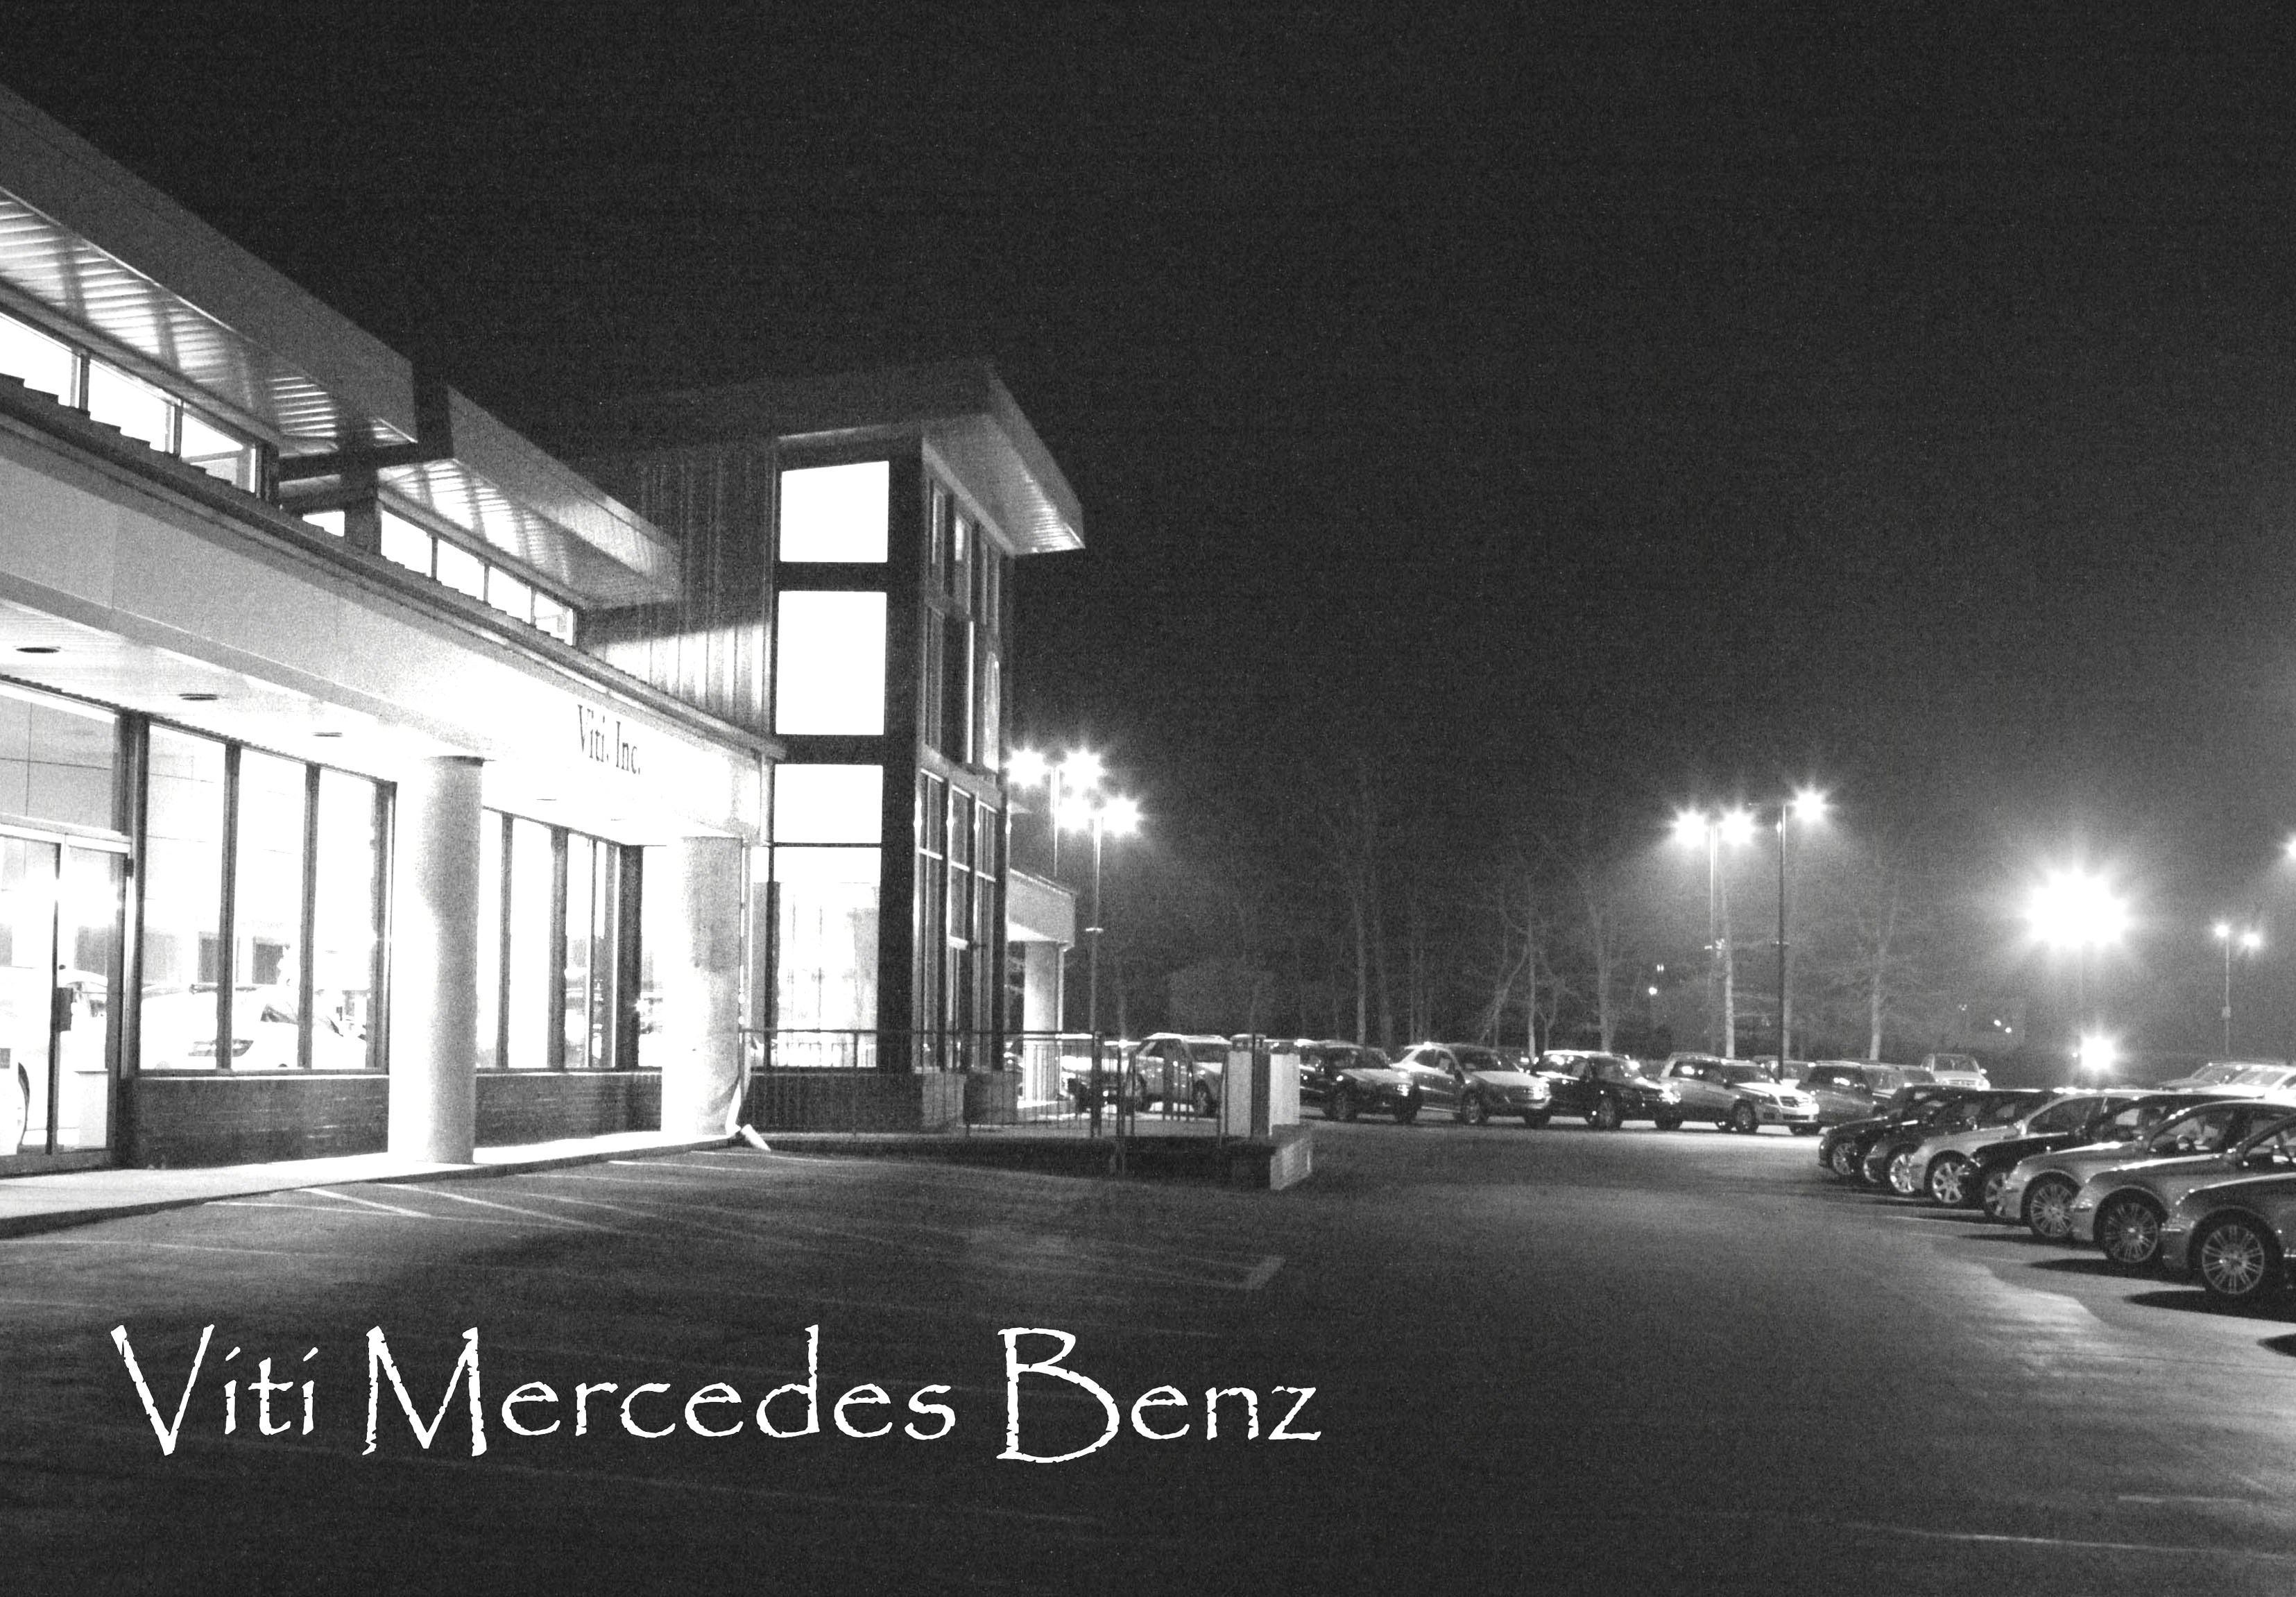 viti mercedes benz tiverton ri 02878 angies list